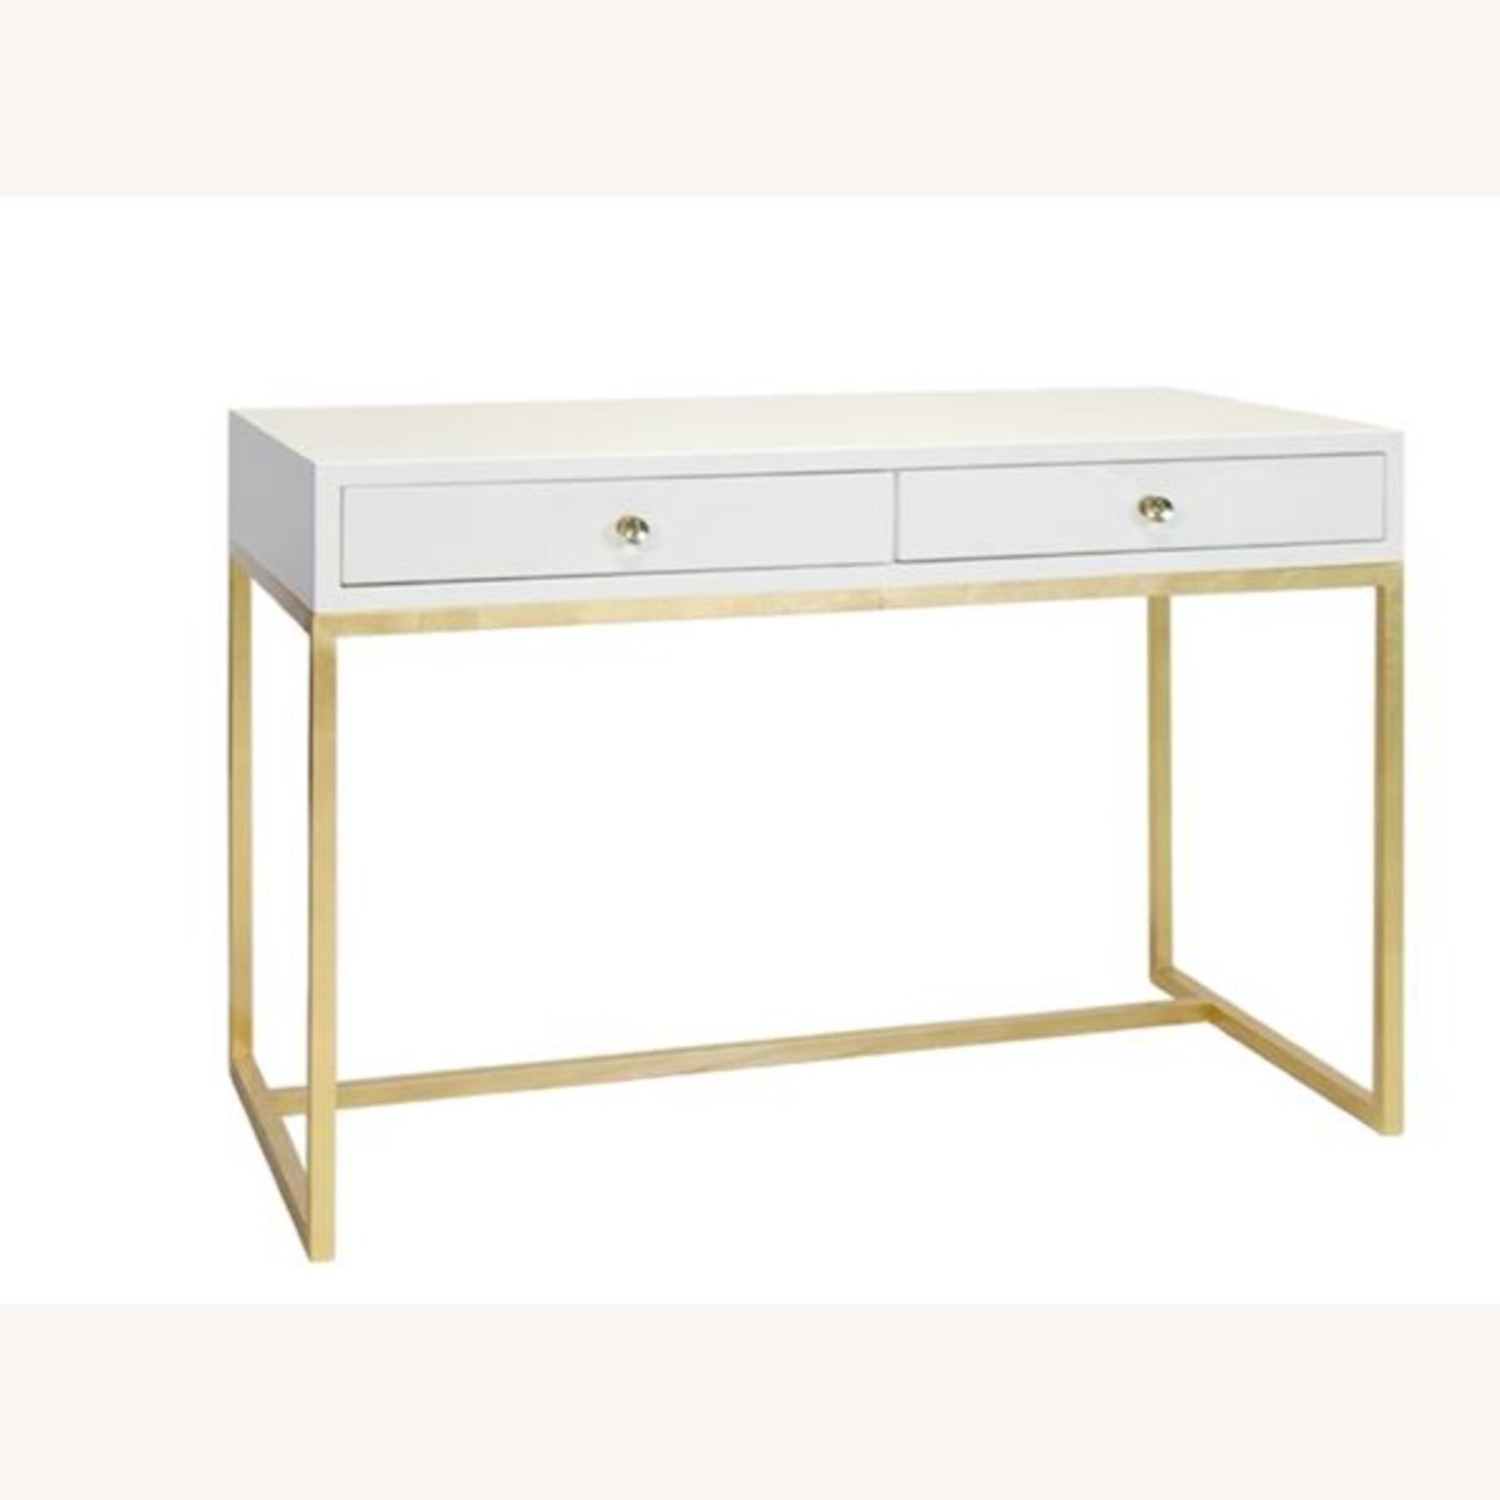 Kathy Kuo Cami Hollywood Regency White Lacquered Gold Desk - image-1